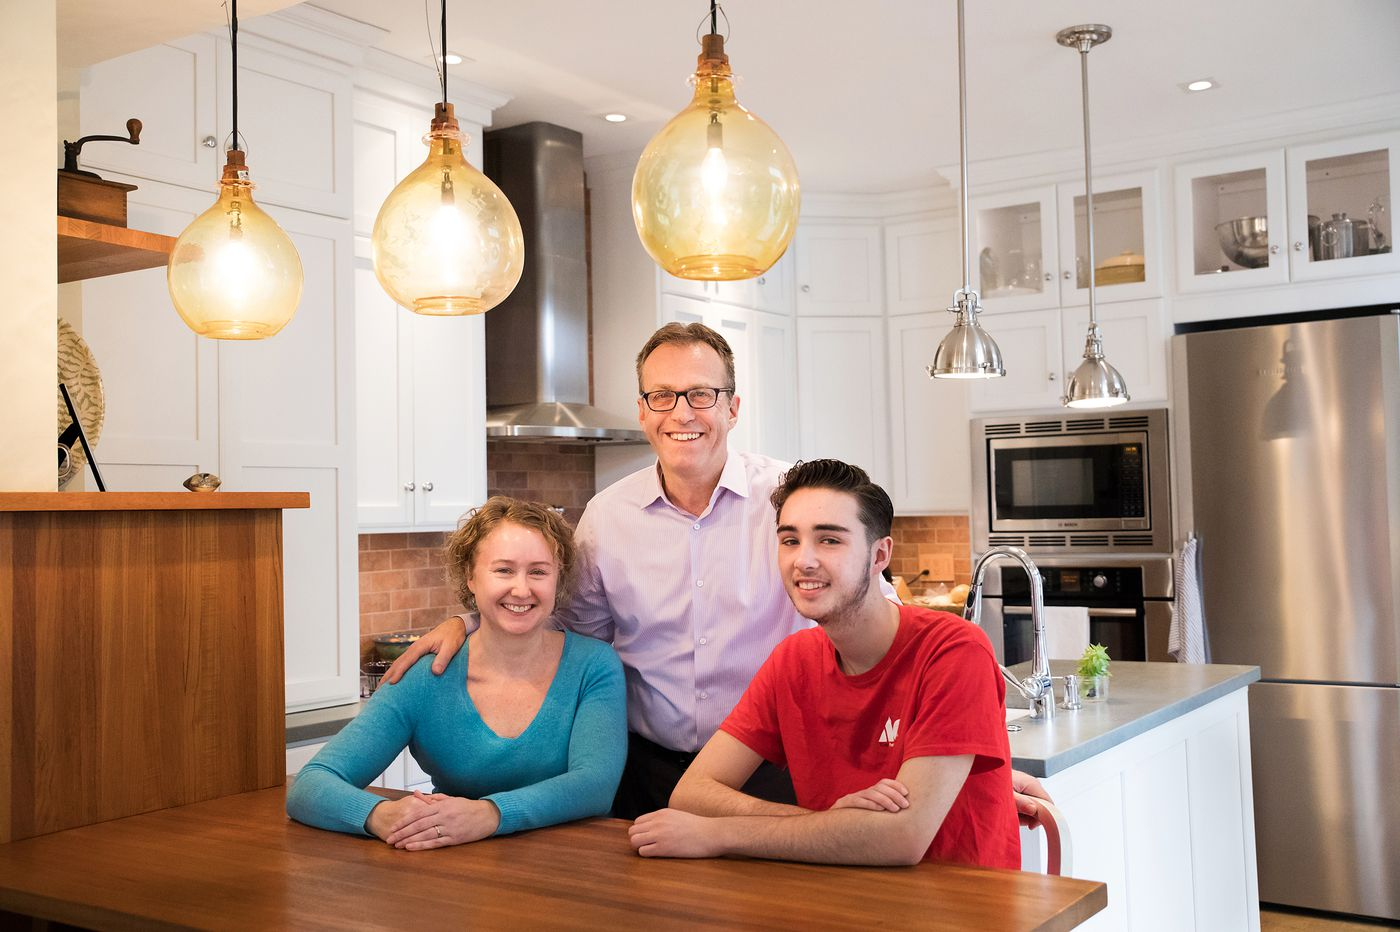 Fairmount rowhouse for blended family combines historical, modern, and sustainable